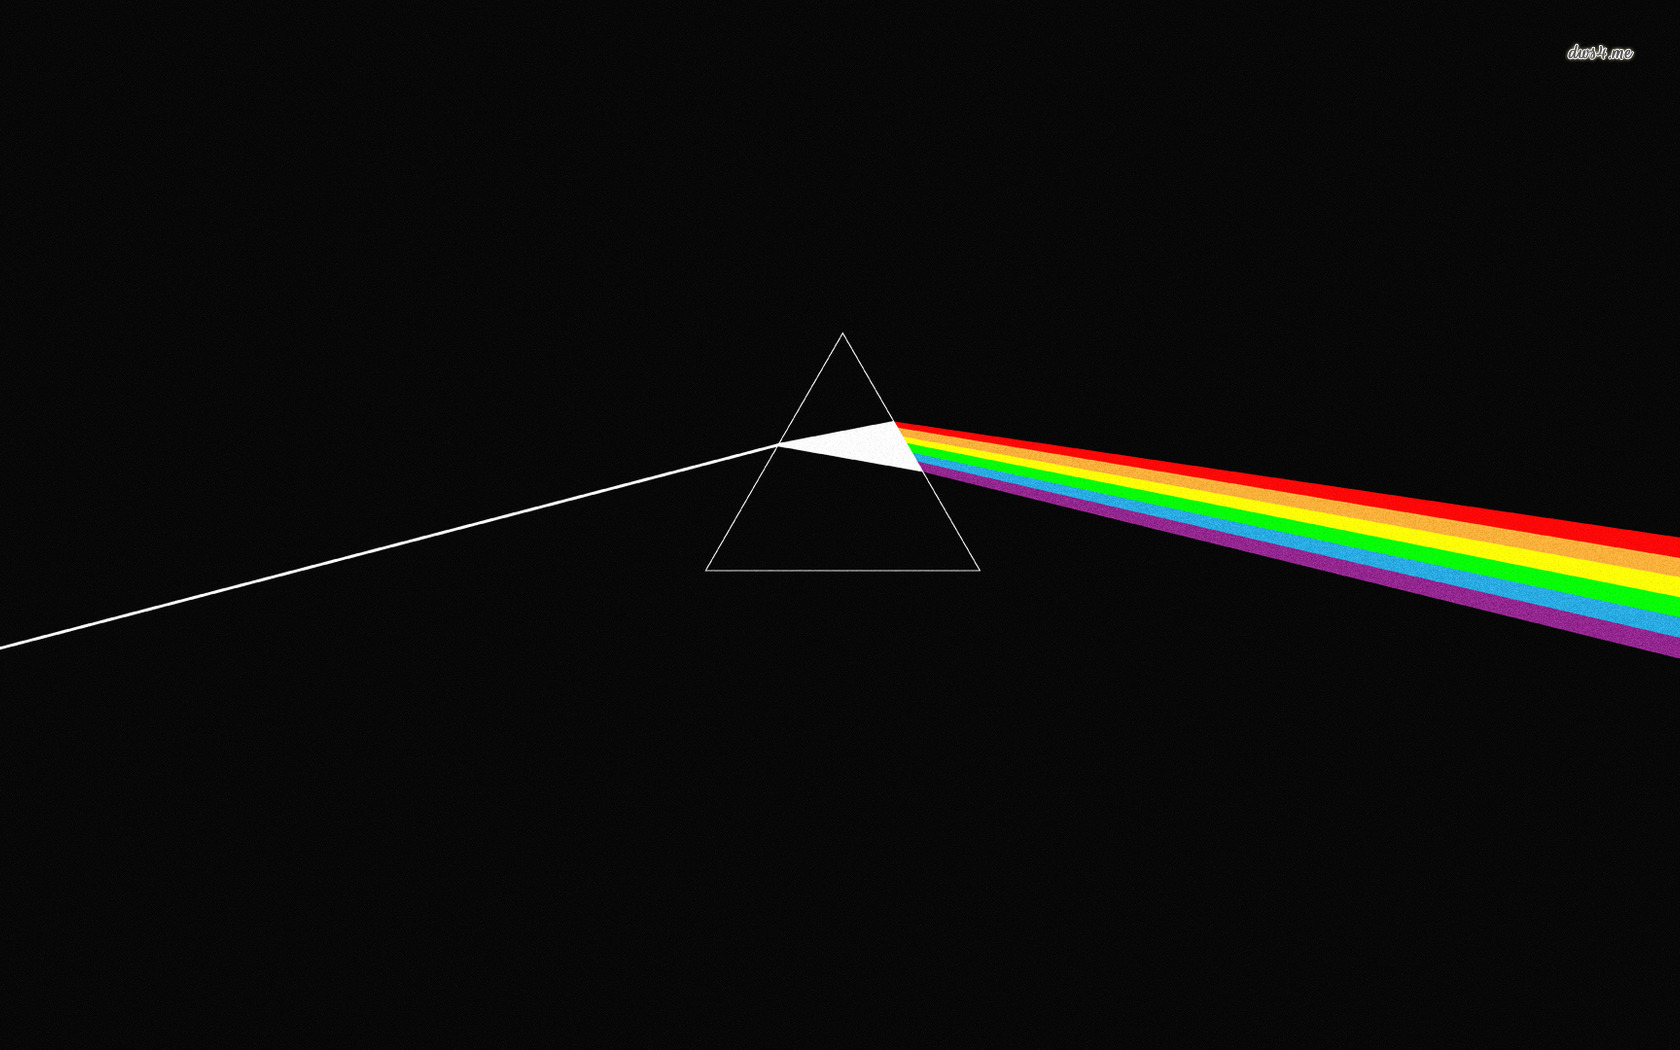 dark side of the moon wallpaper wallpapersafari